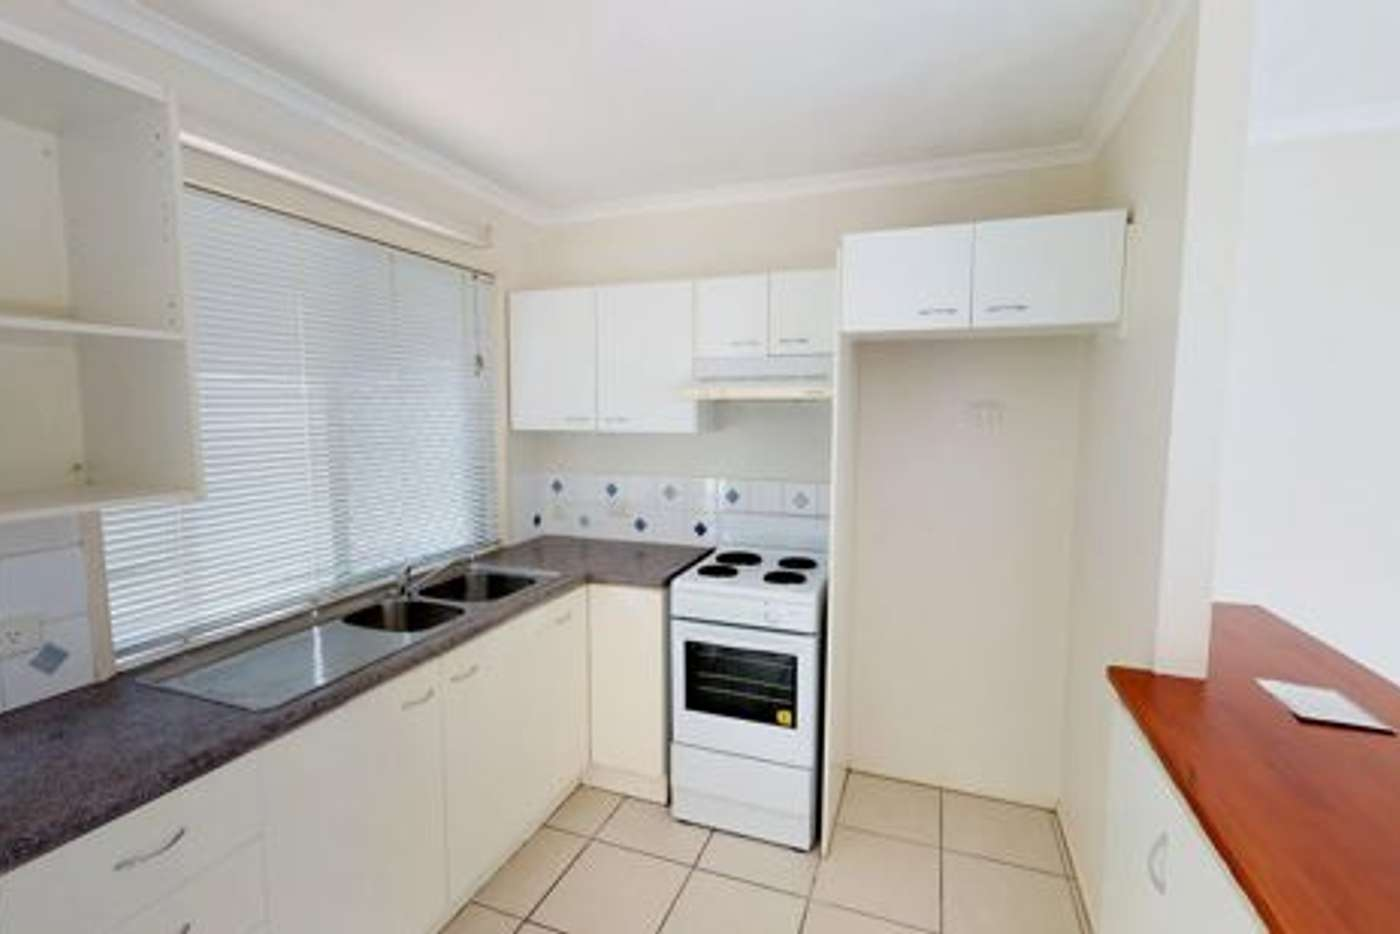 Sixth view of Homely house listing, 177 Toohey Street, Caboolture QLD 4510